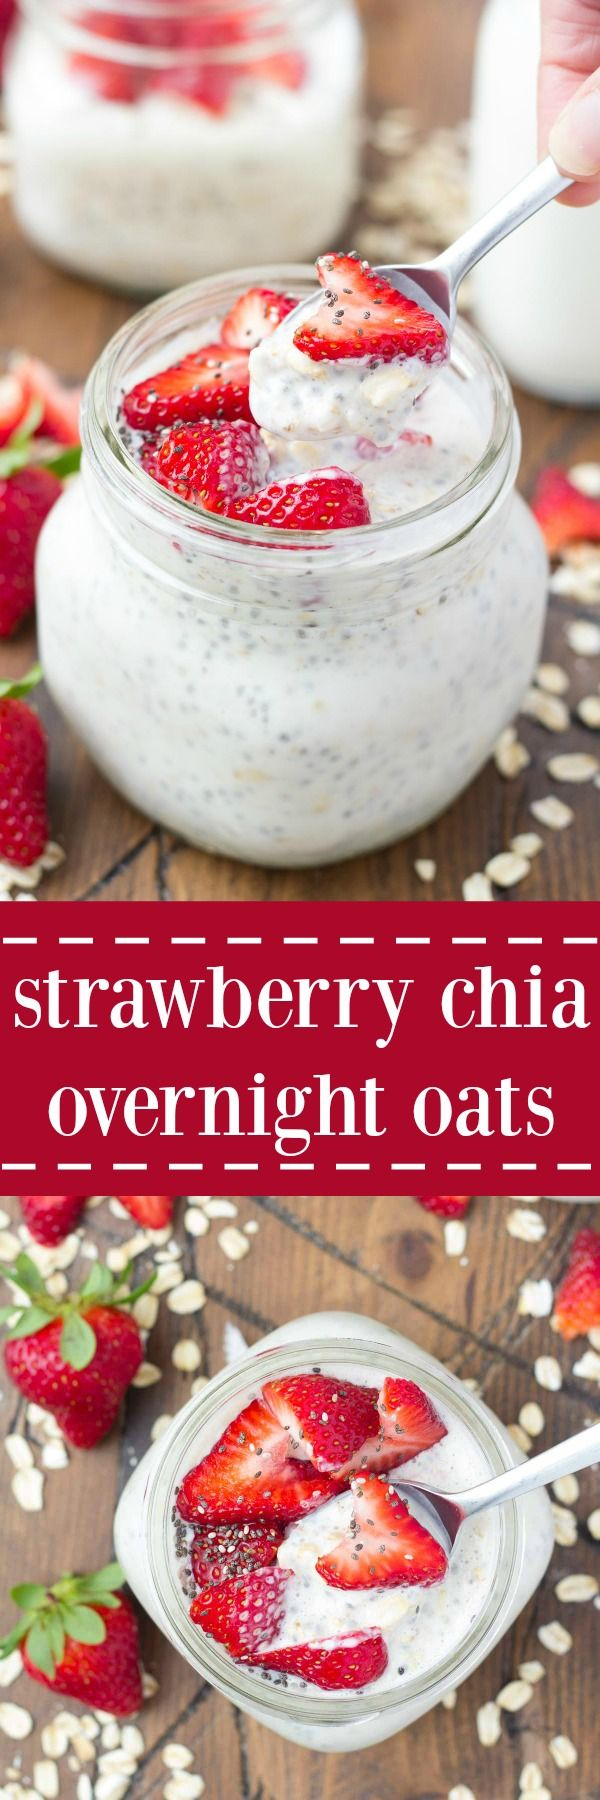 High protein Strawberry Chia Overnight Oatmeal will keep you feeling full while tasting totally amazing!